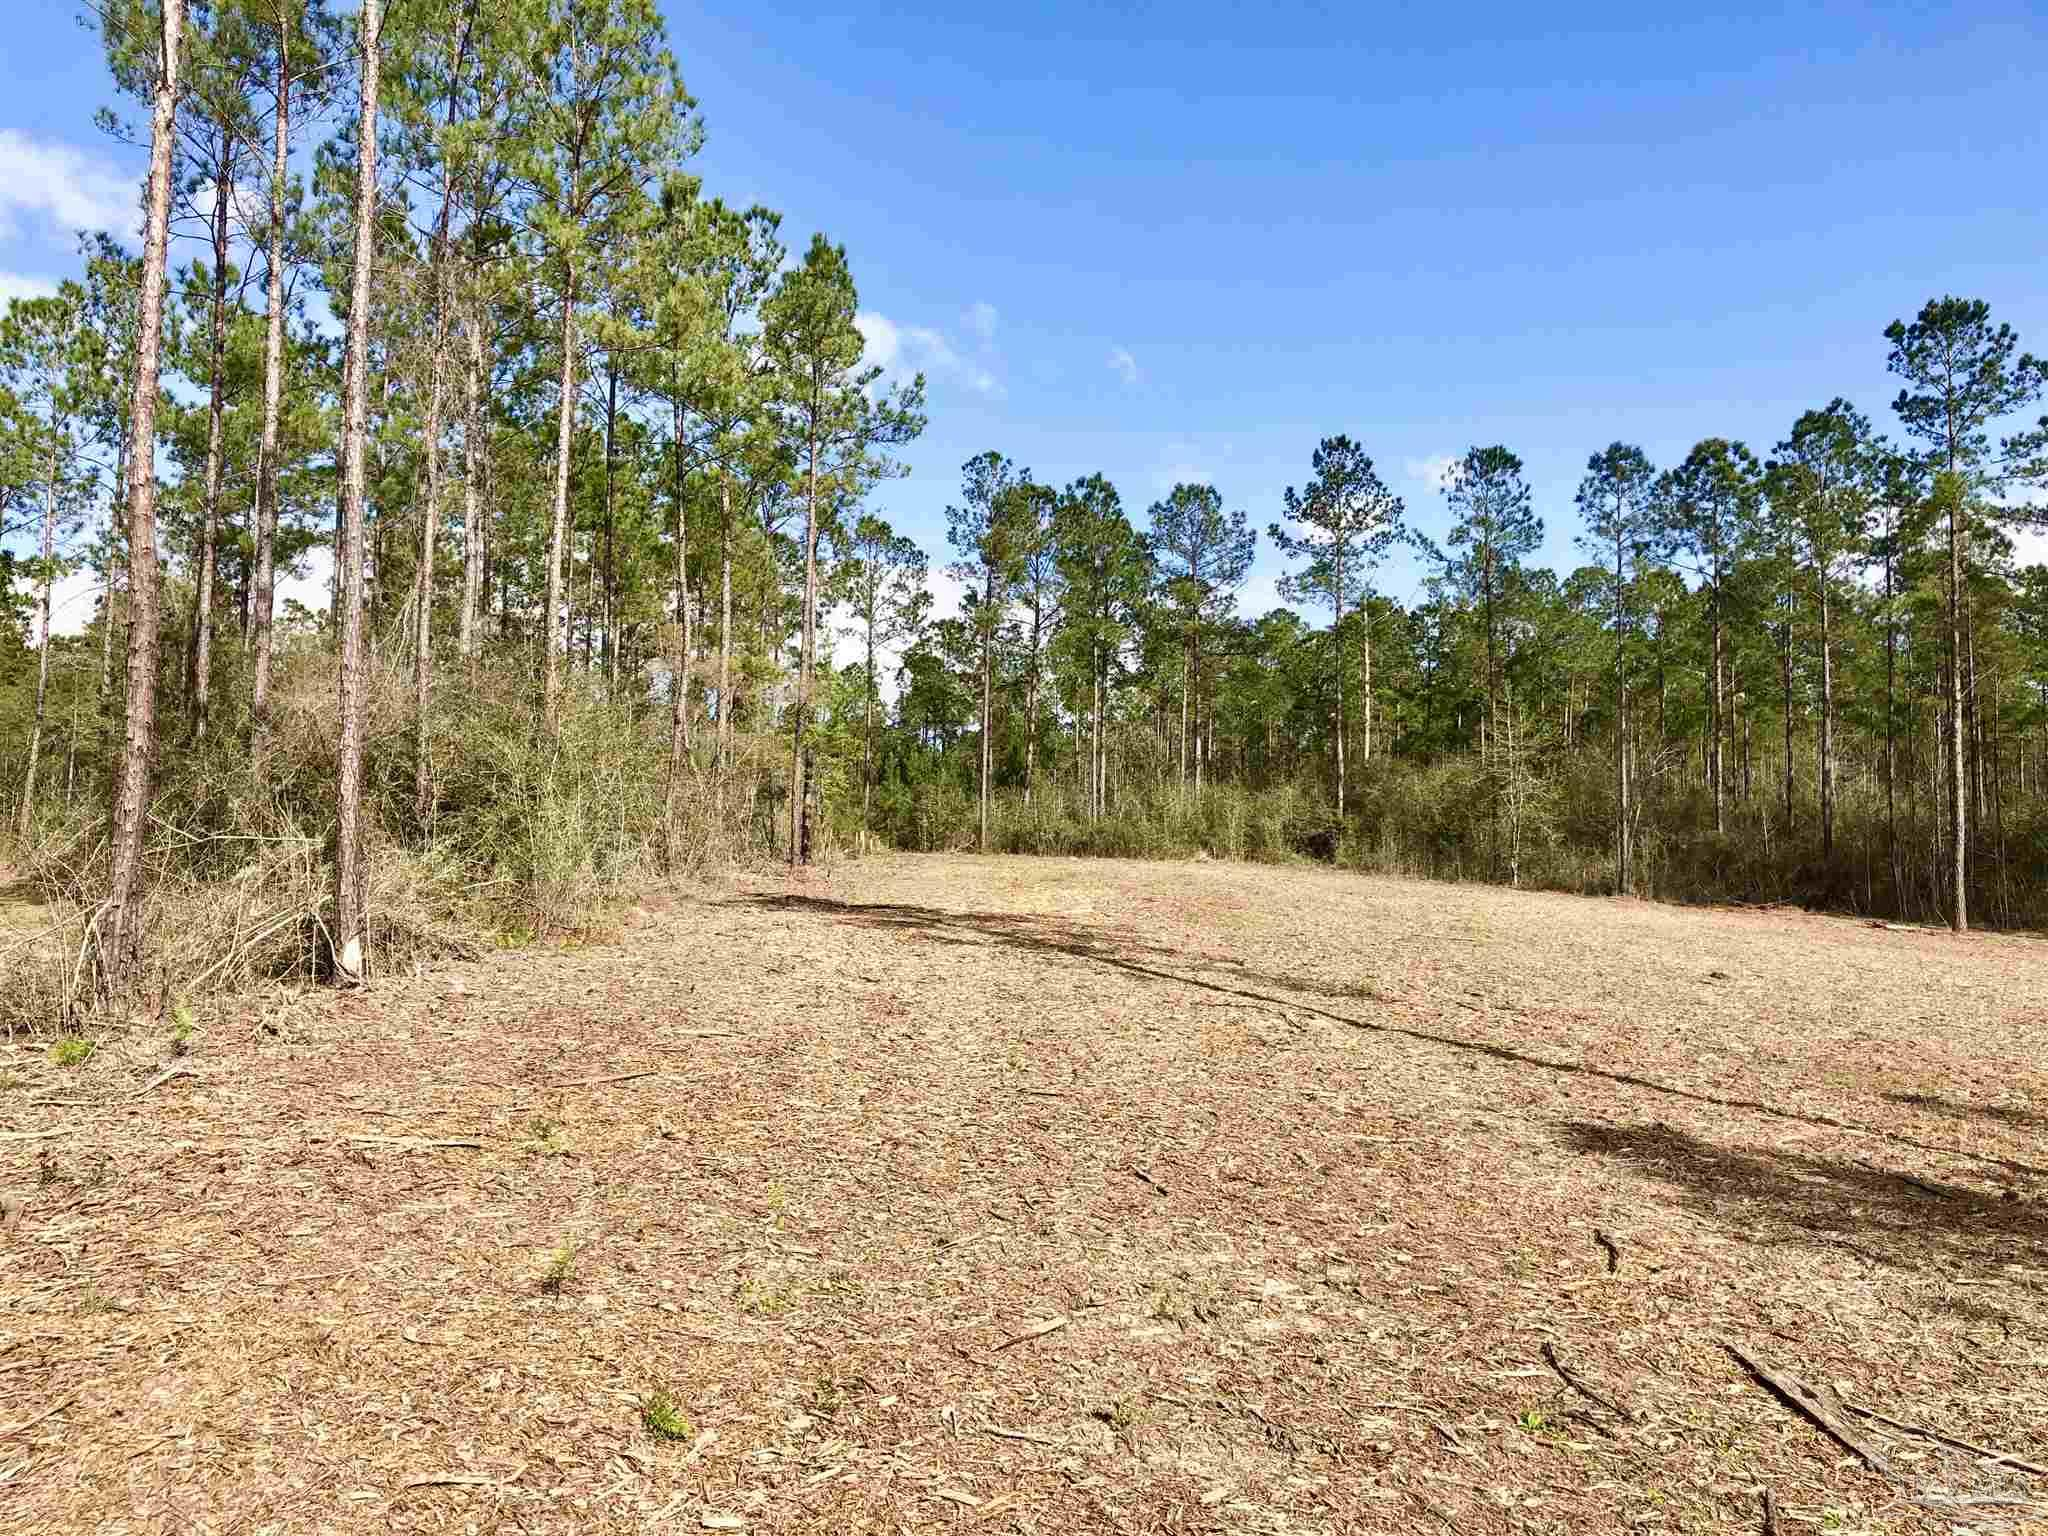 Lot 44 YELLOWSTONE DR, Pace, Florida 32571, ,Lots And Land,For Sale,Lot 44 YELLOWSTONE DR,587036